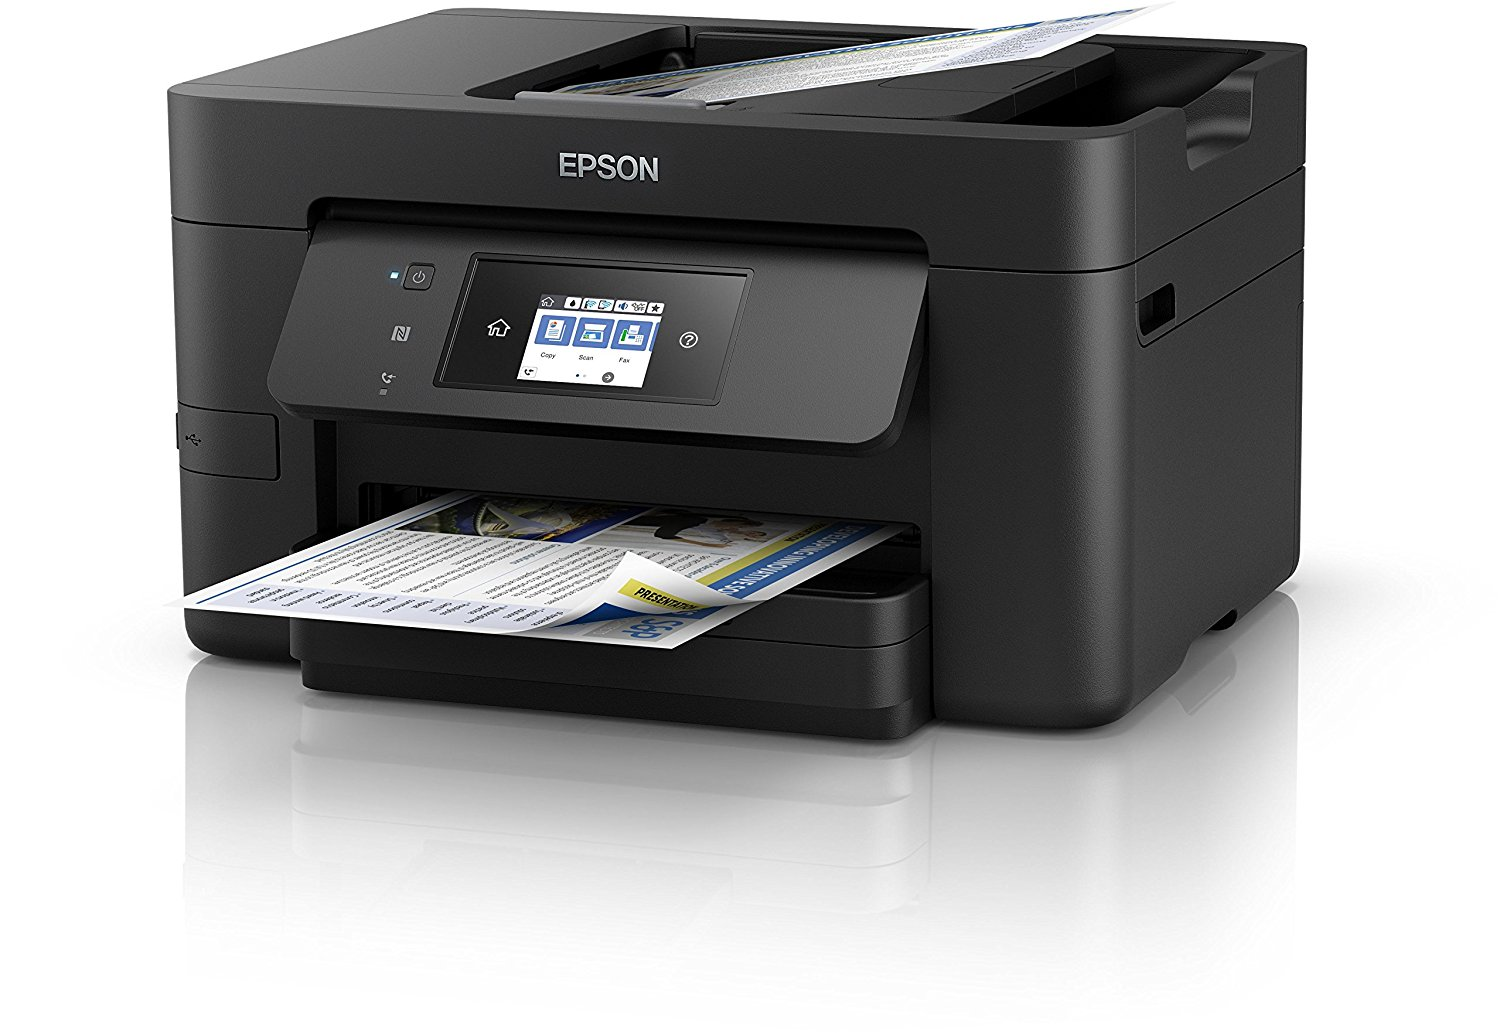 Epson WorkForce Pro WF-3720DWF Printer